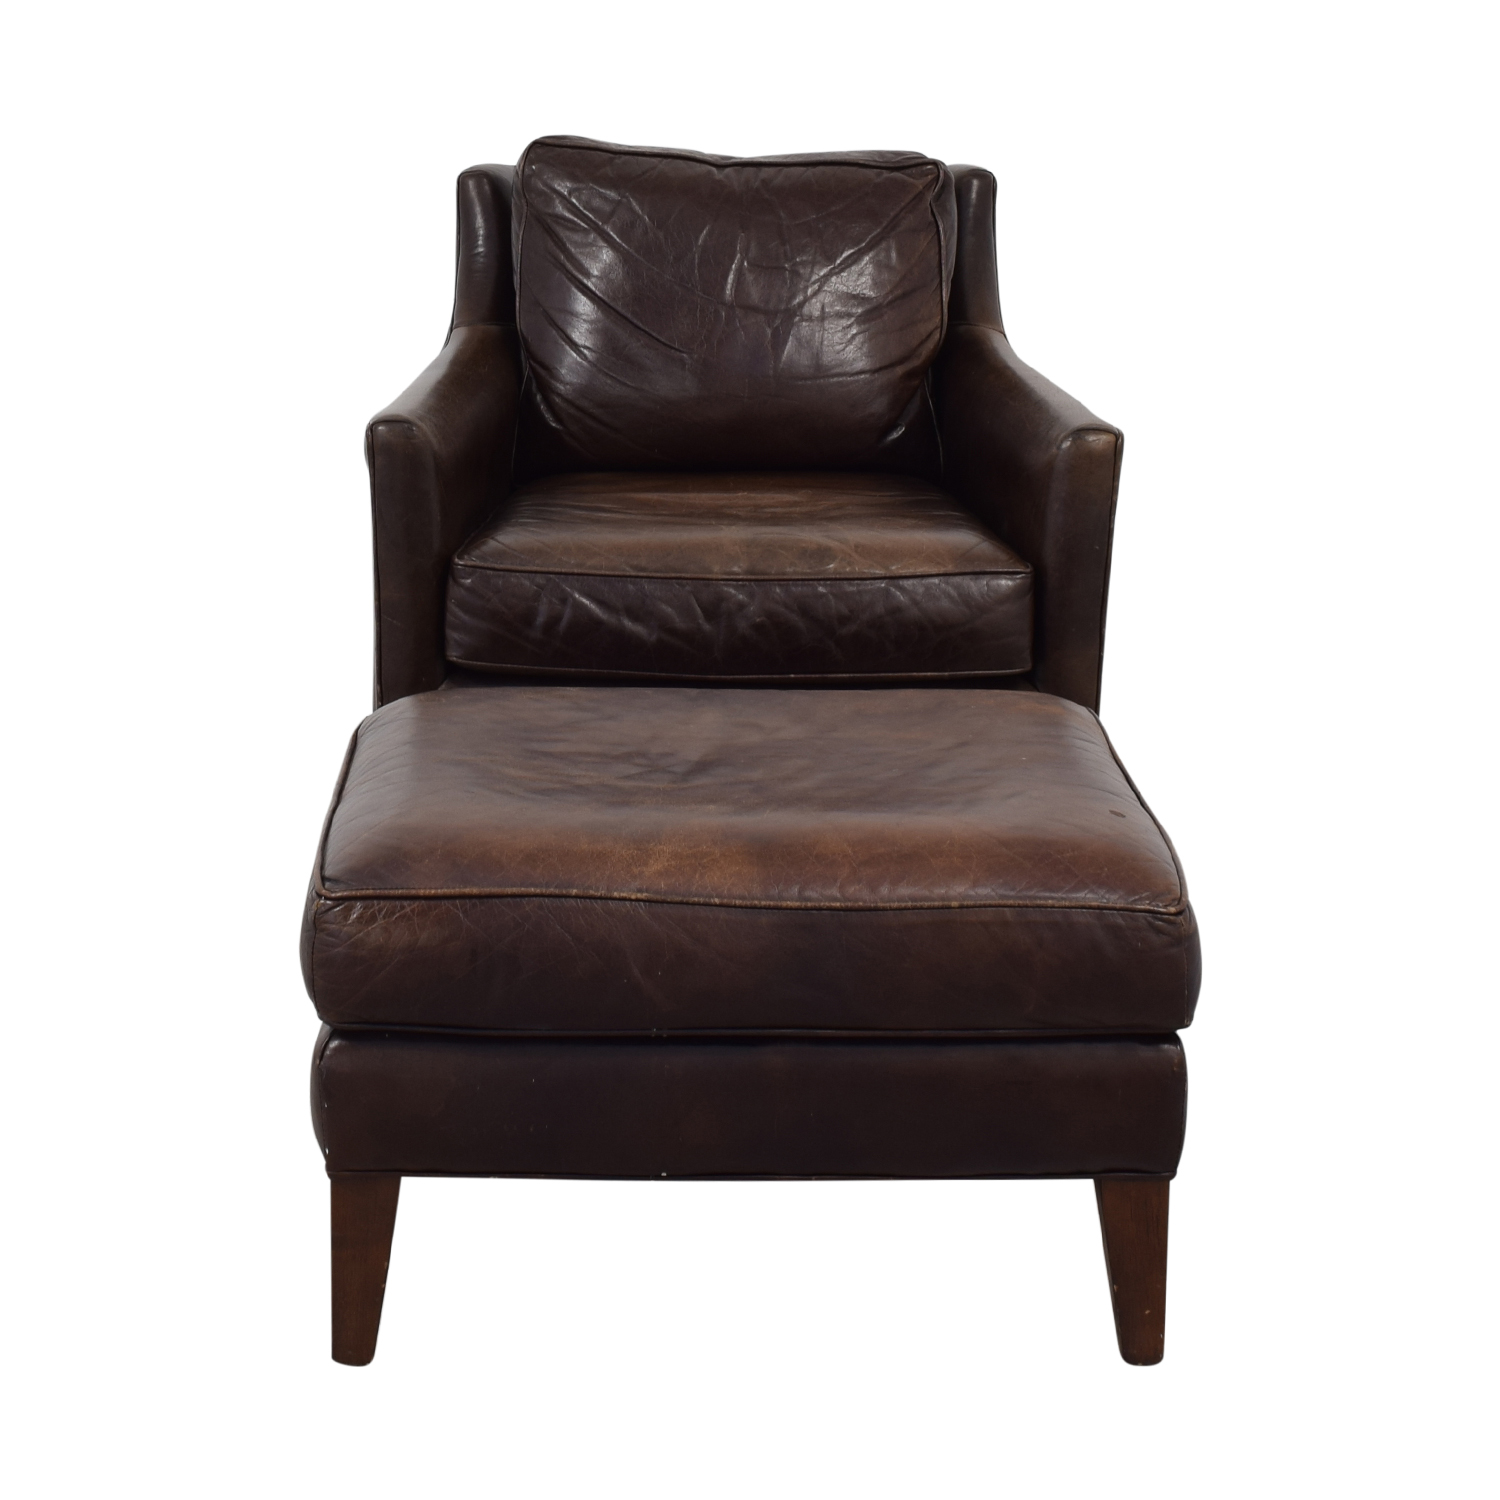 83 Off Brown Accent Chair With Ottoman Chairs